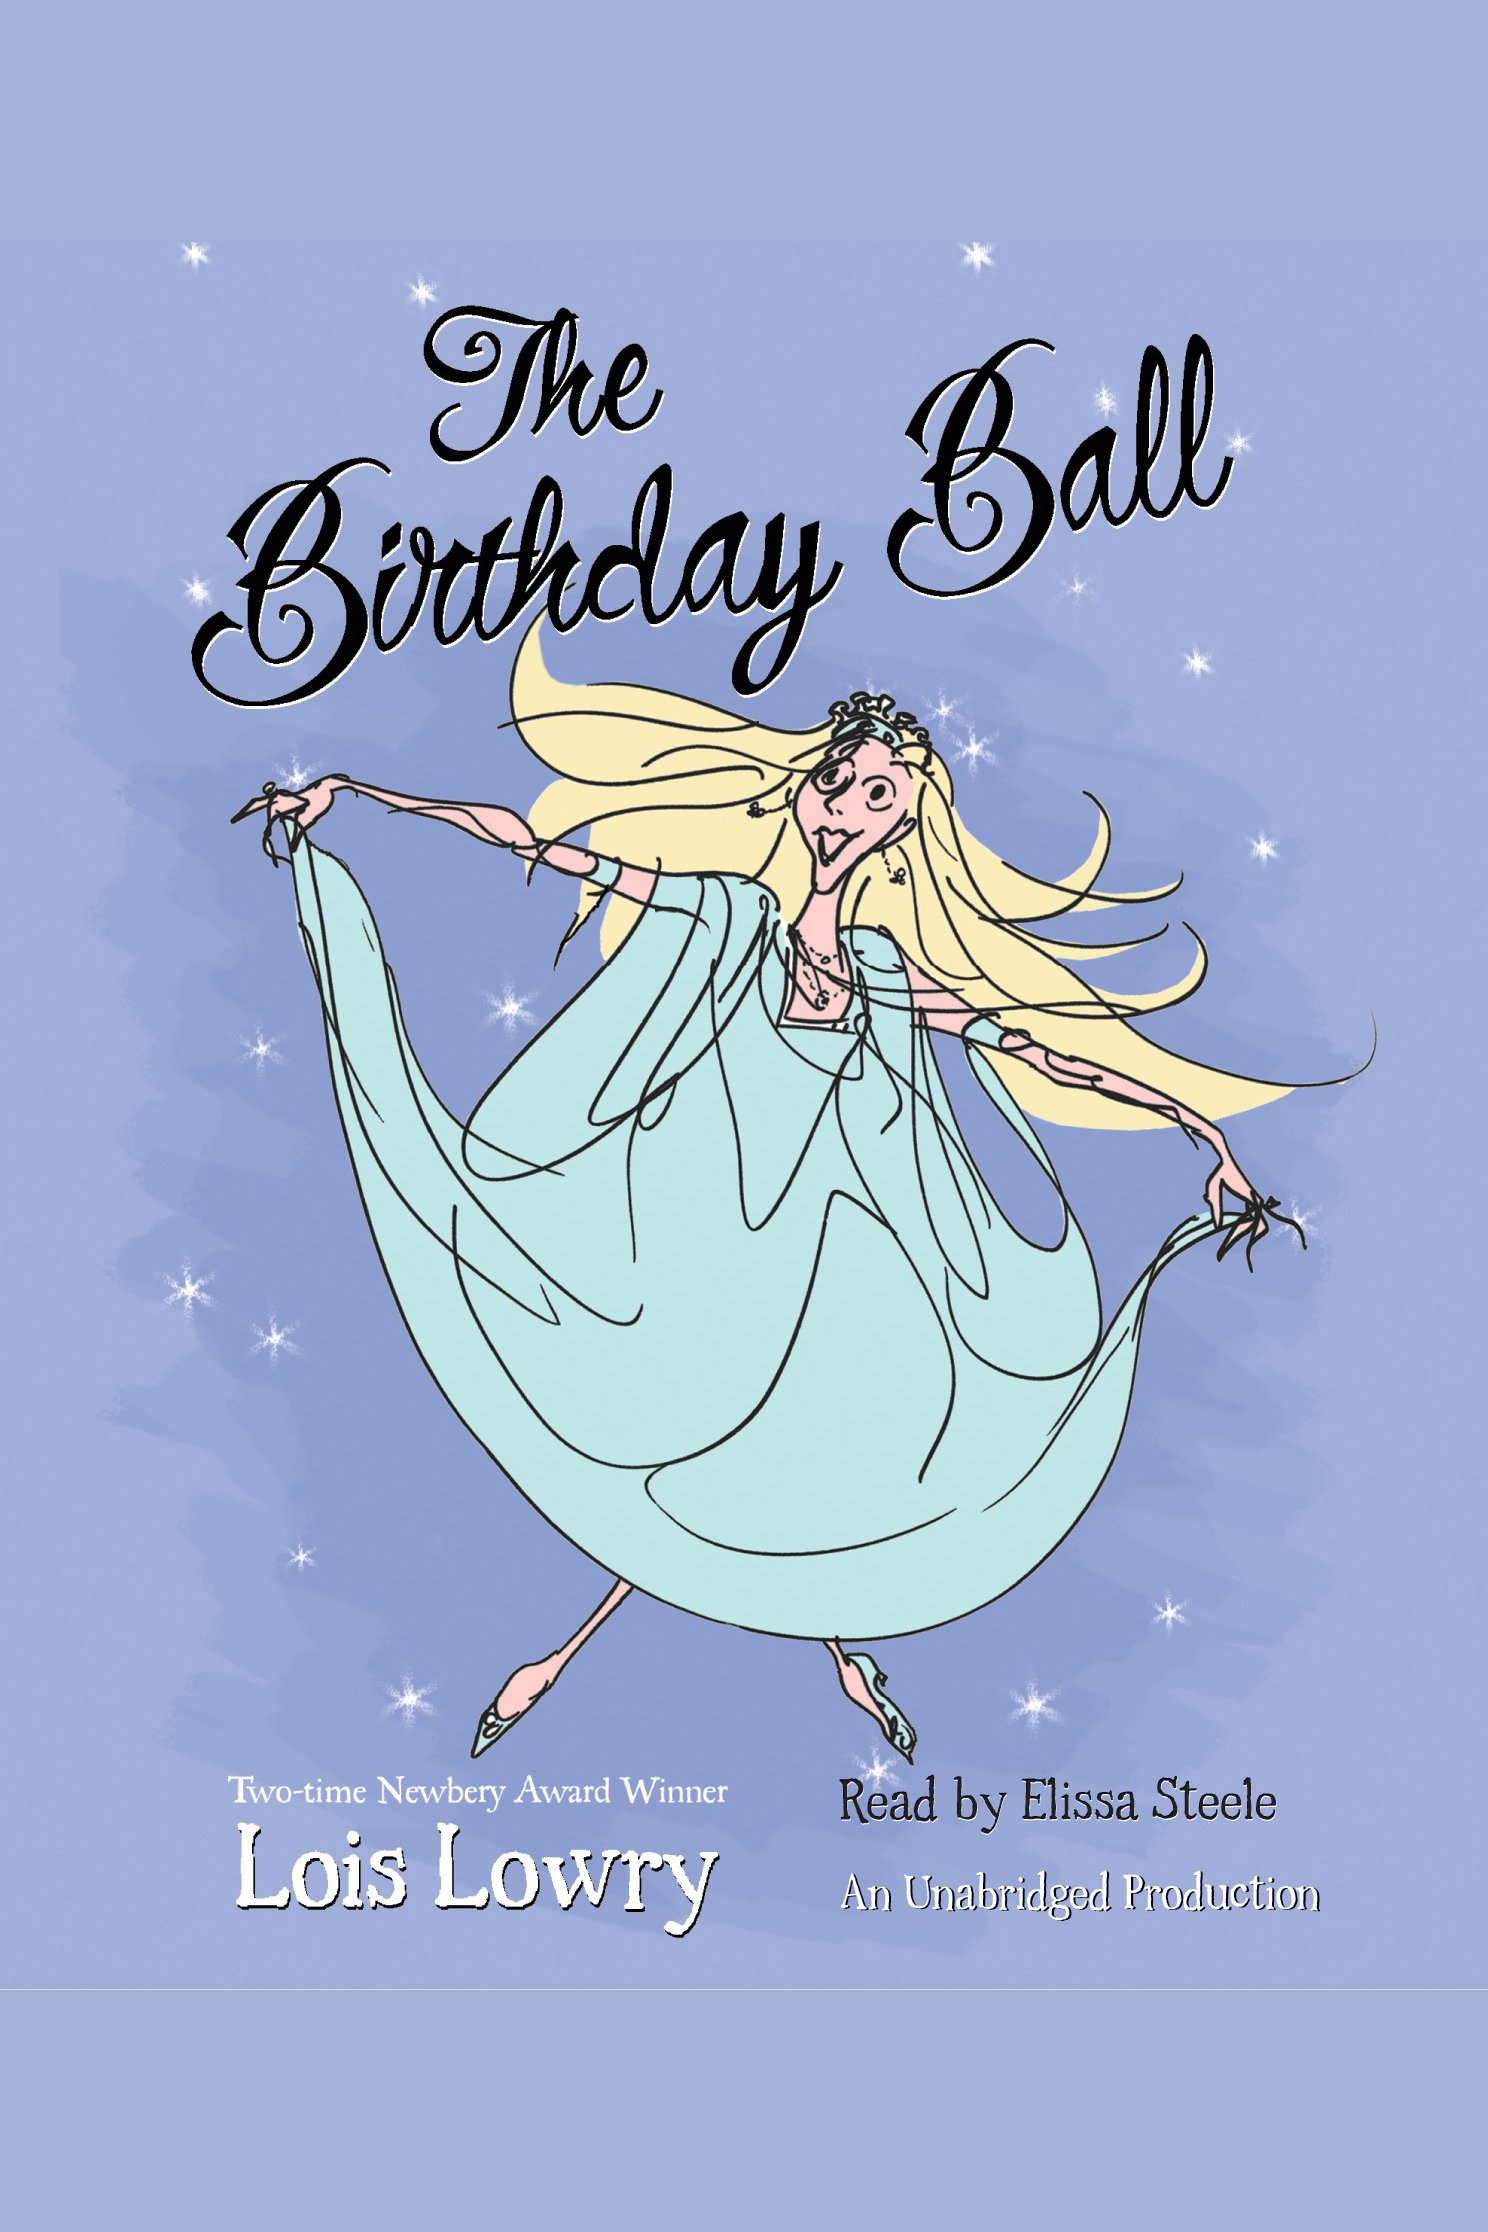 The birthday ball cover image